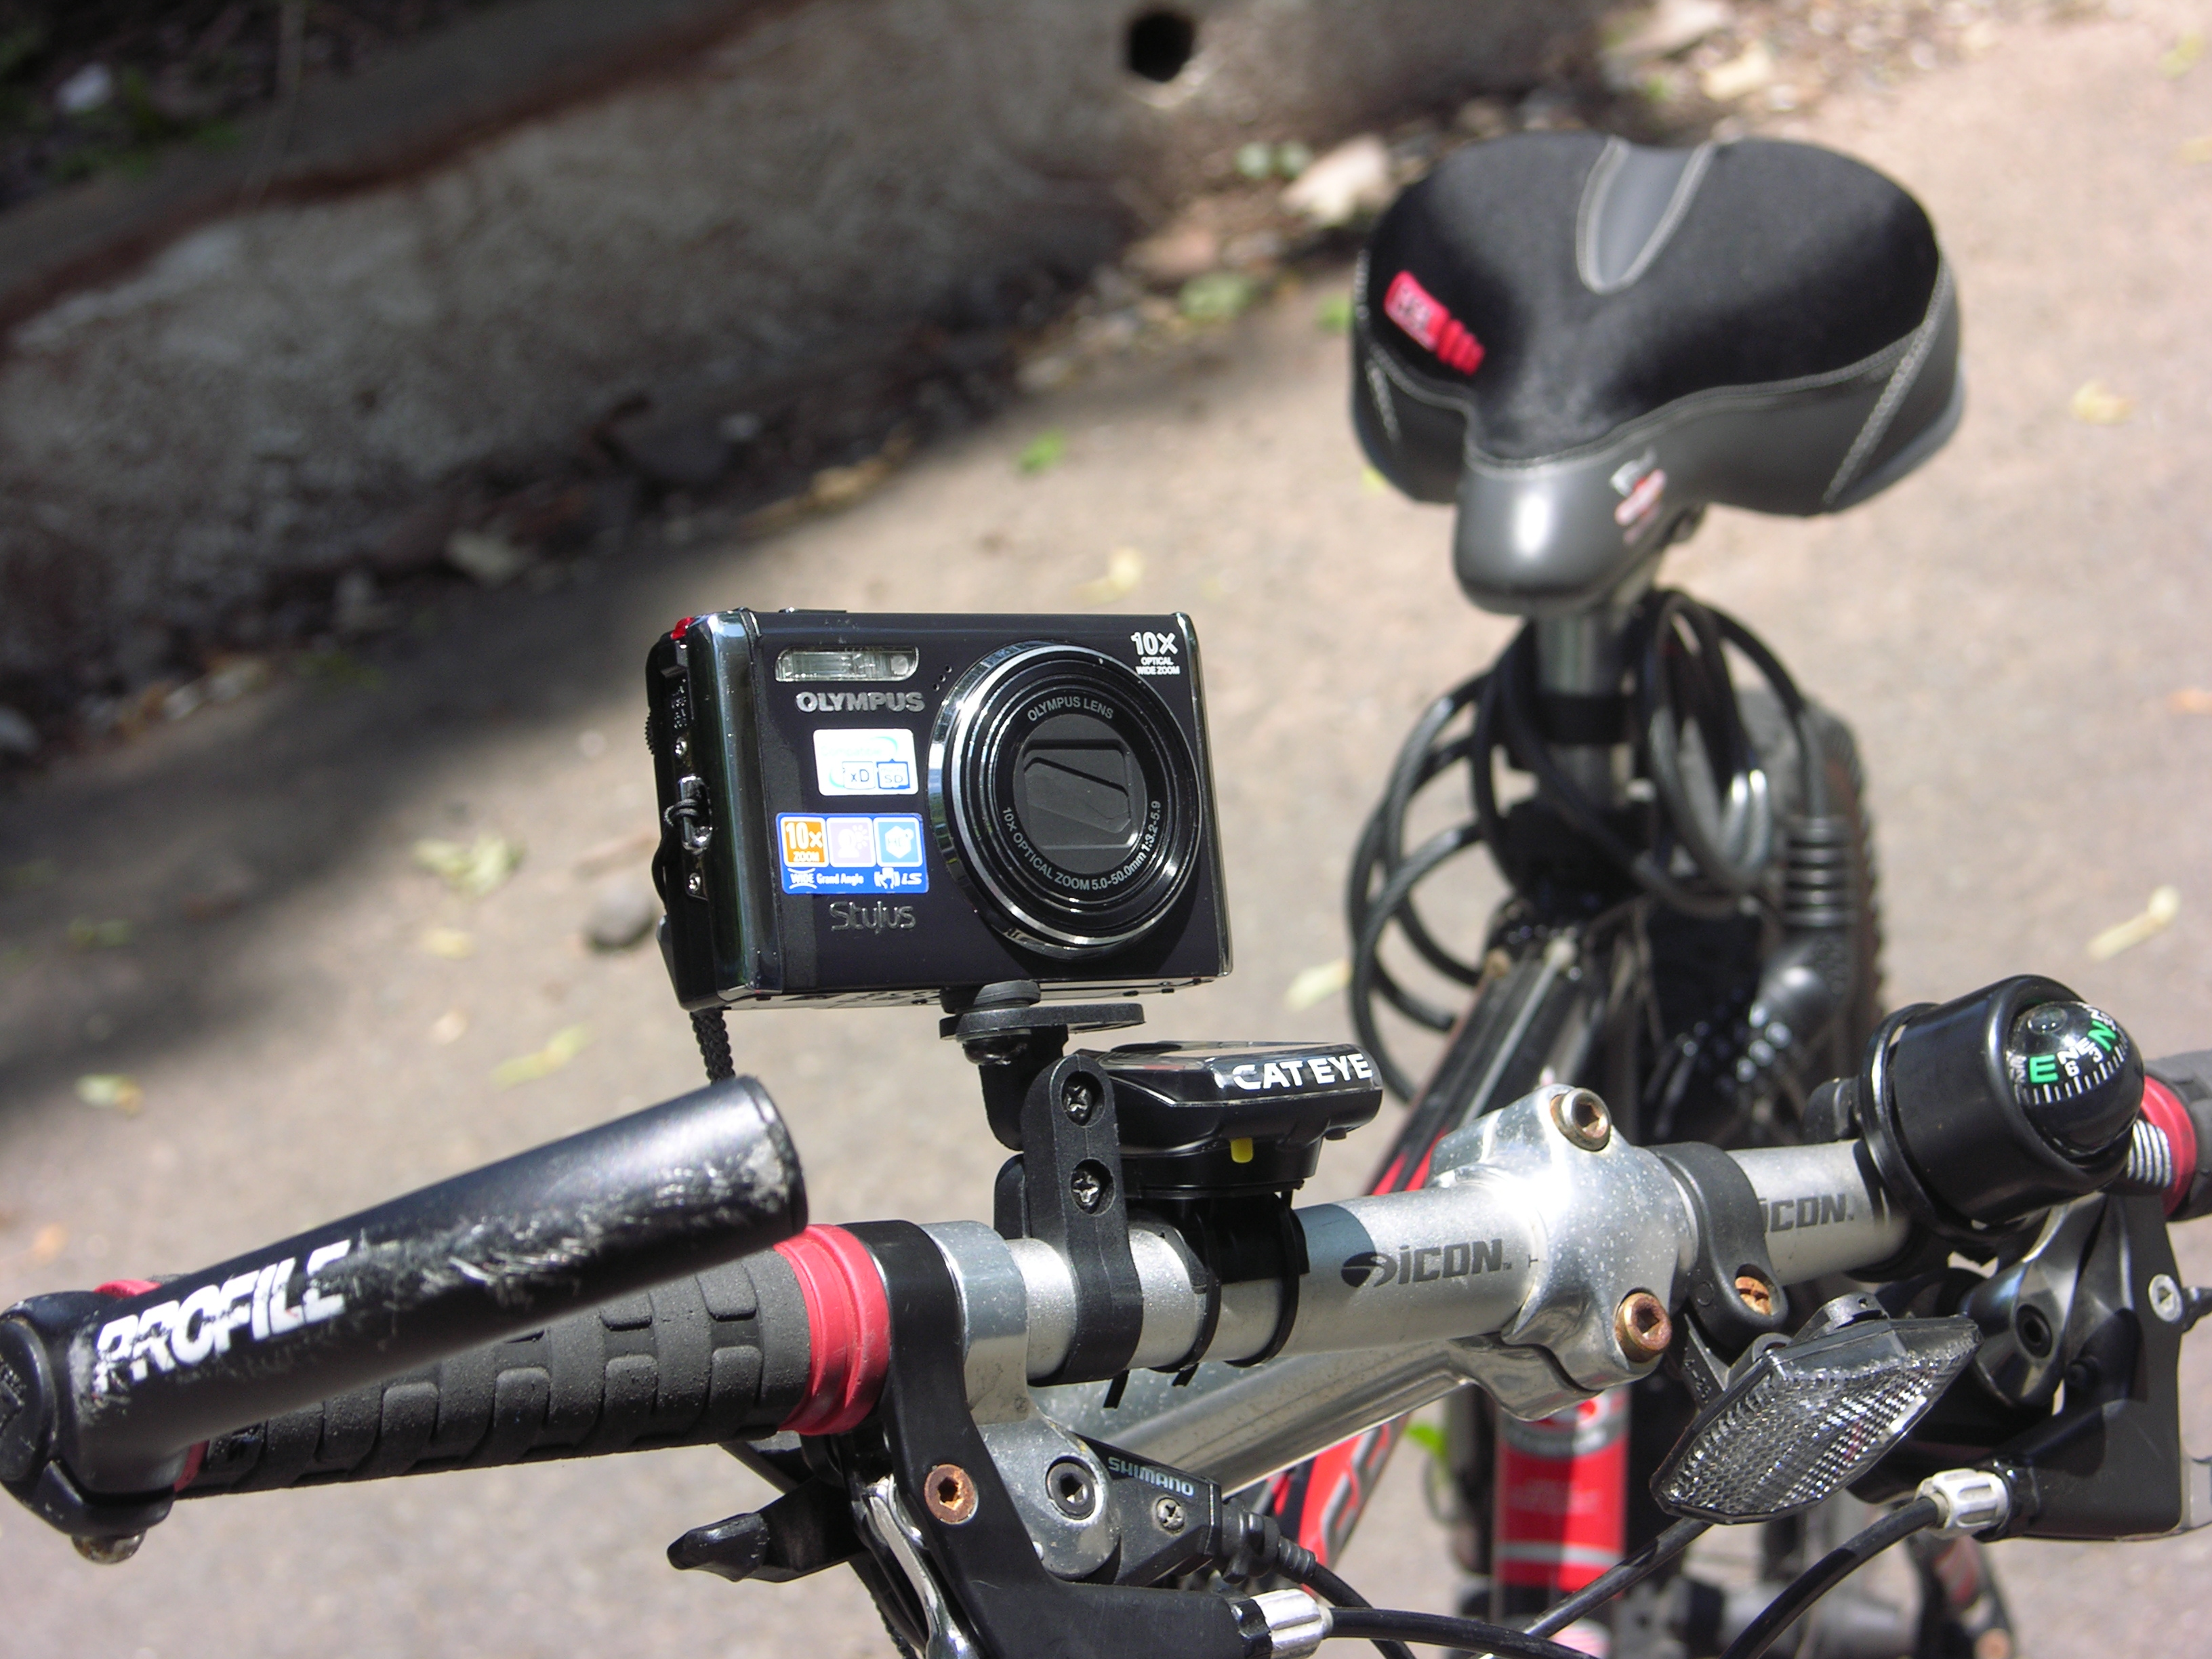 Quick and Easy to make Camera Bike mount!